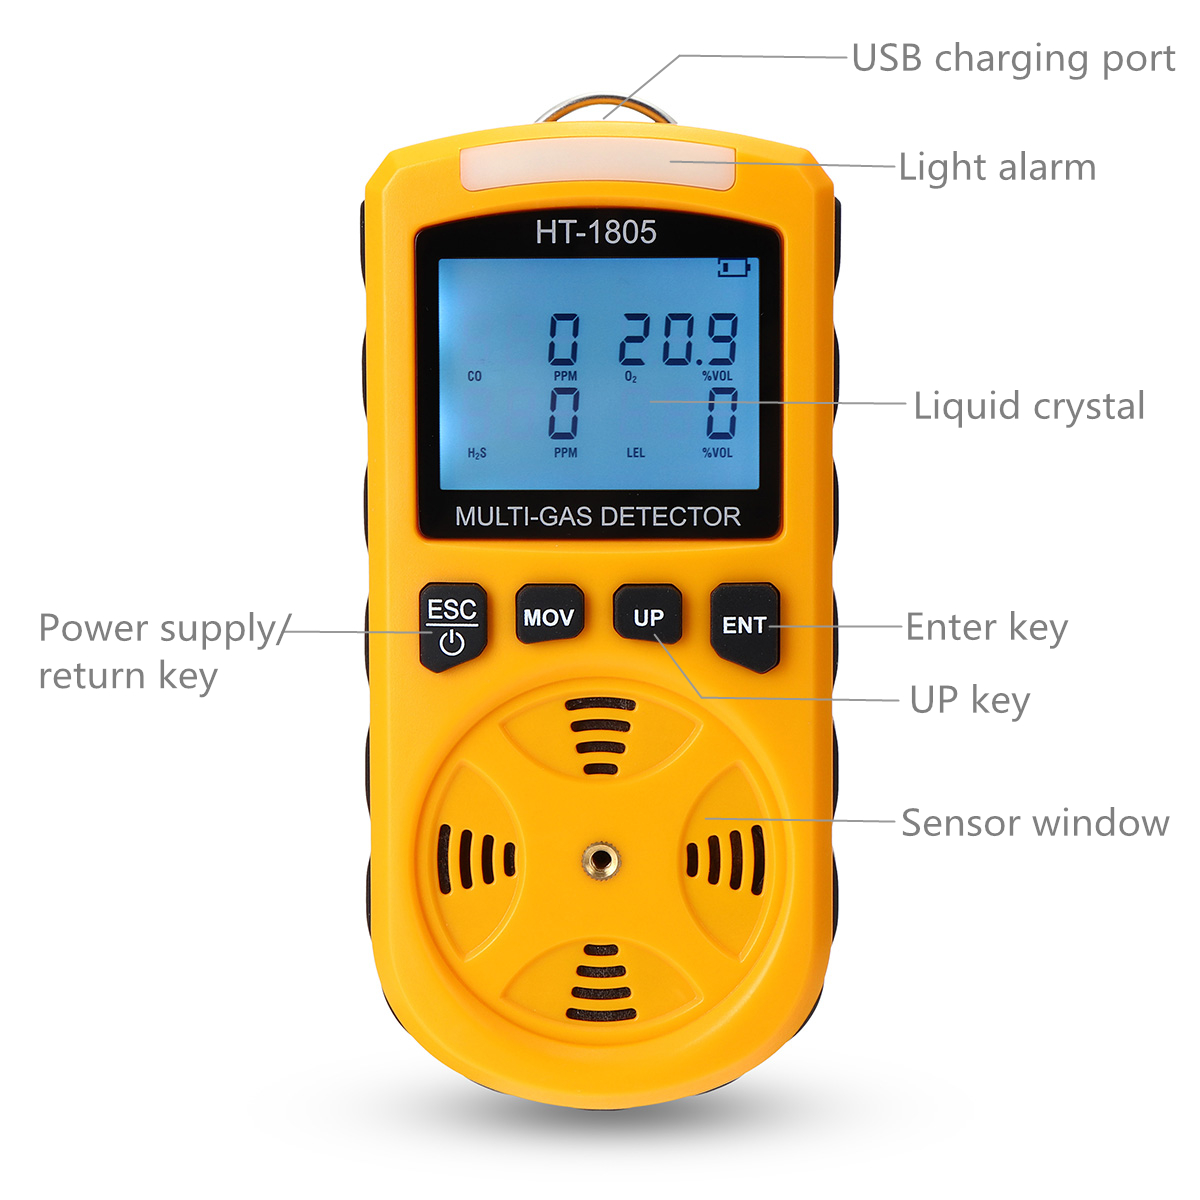 HT-1805 4 in 1 Portable Gas Tester Detector Poisonous O2 CO H2S LEL Gas Density Monitor